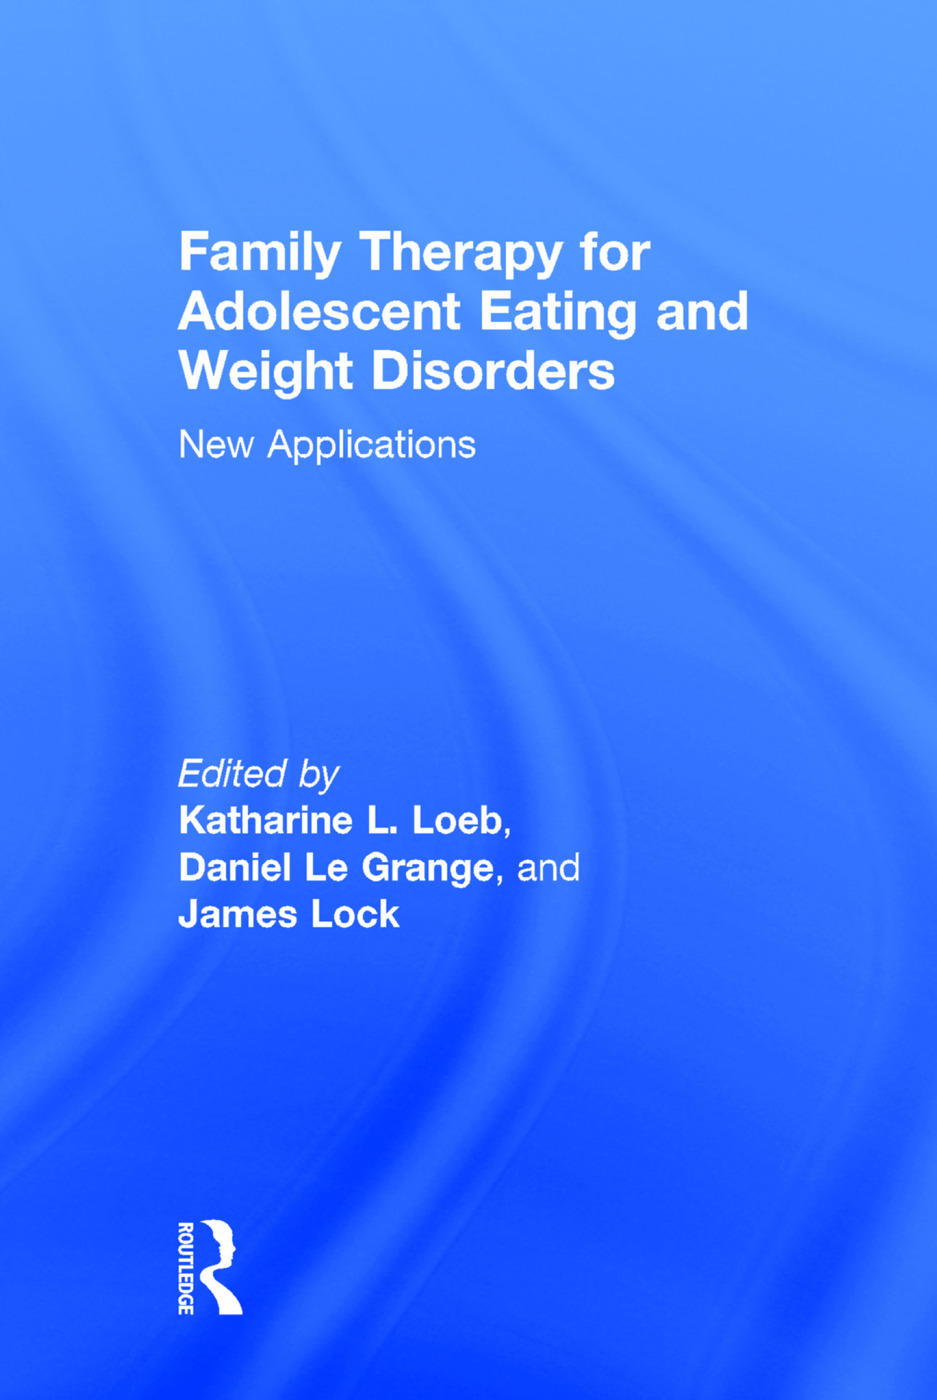 Family-Based Treatment for Child and Adolescent Overweight and Obesity: A Transdevelopmental Approach